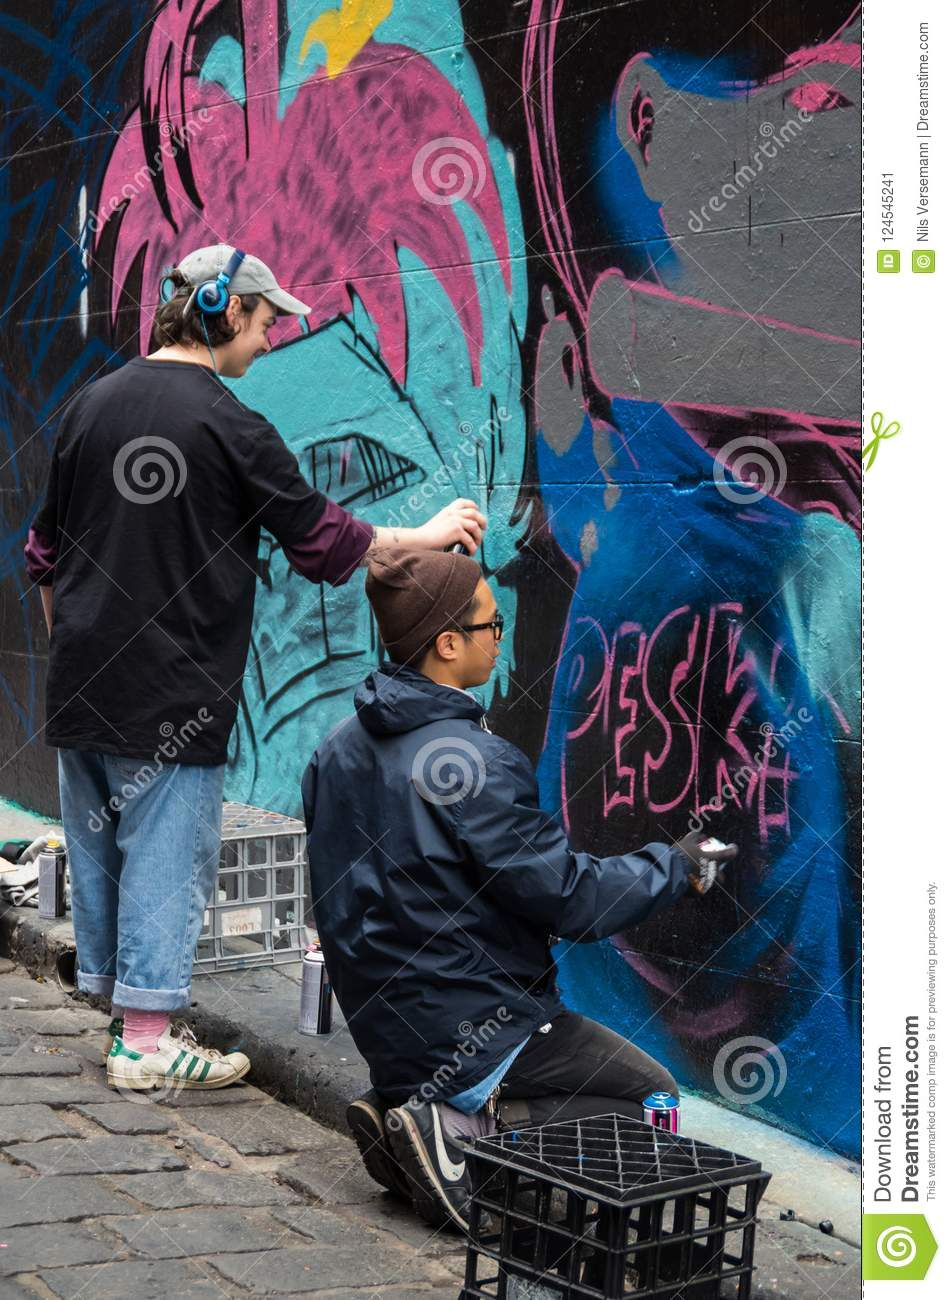 Melbourne street artists in hosier lane a venue for legal street art